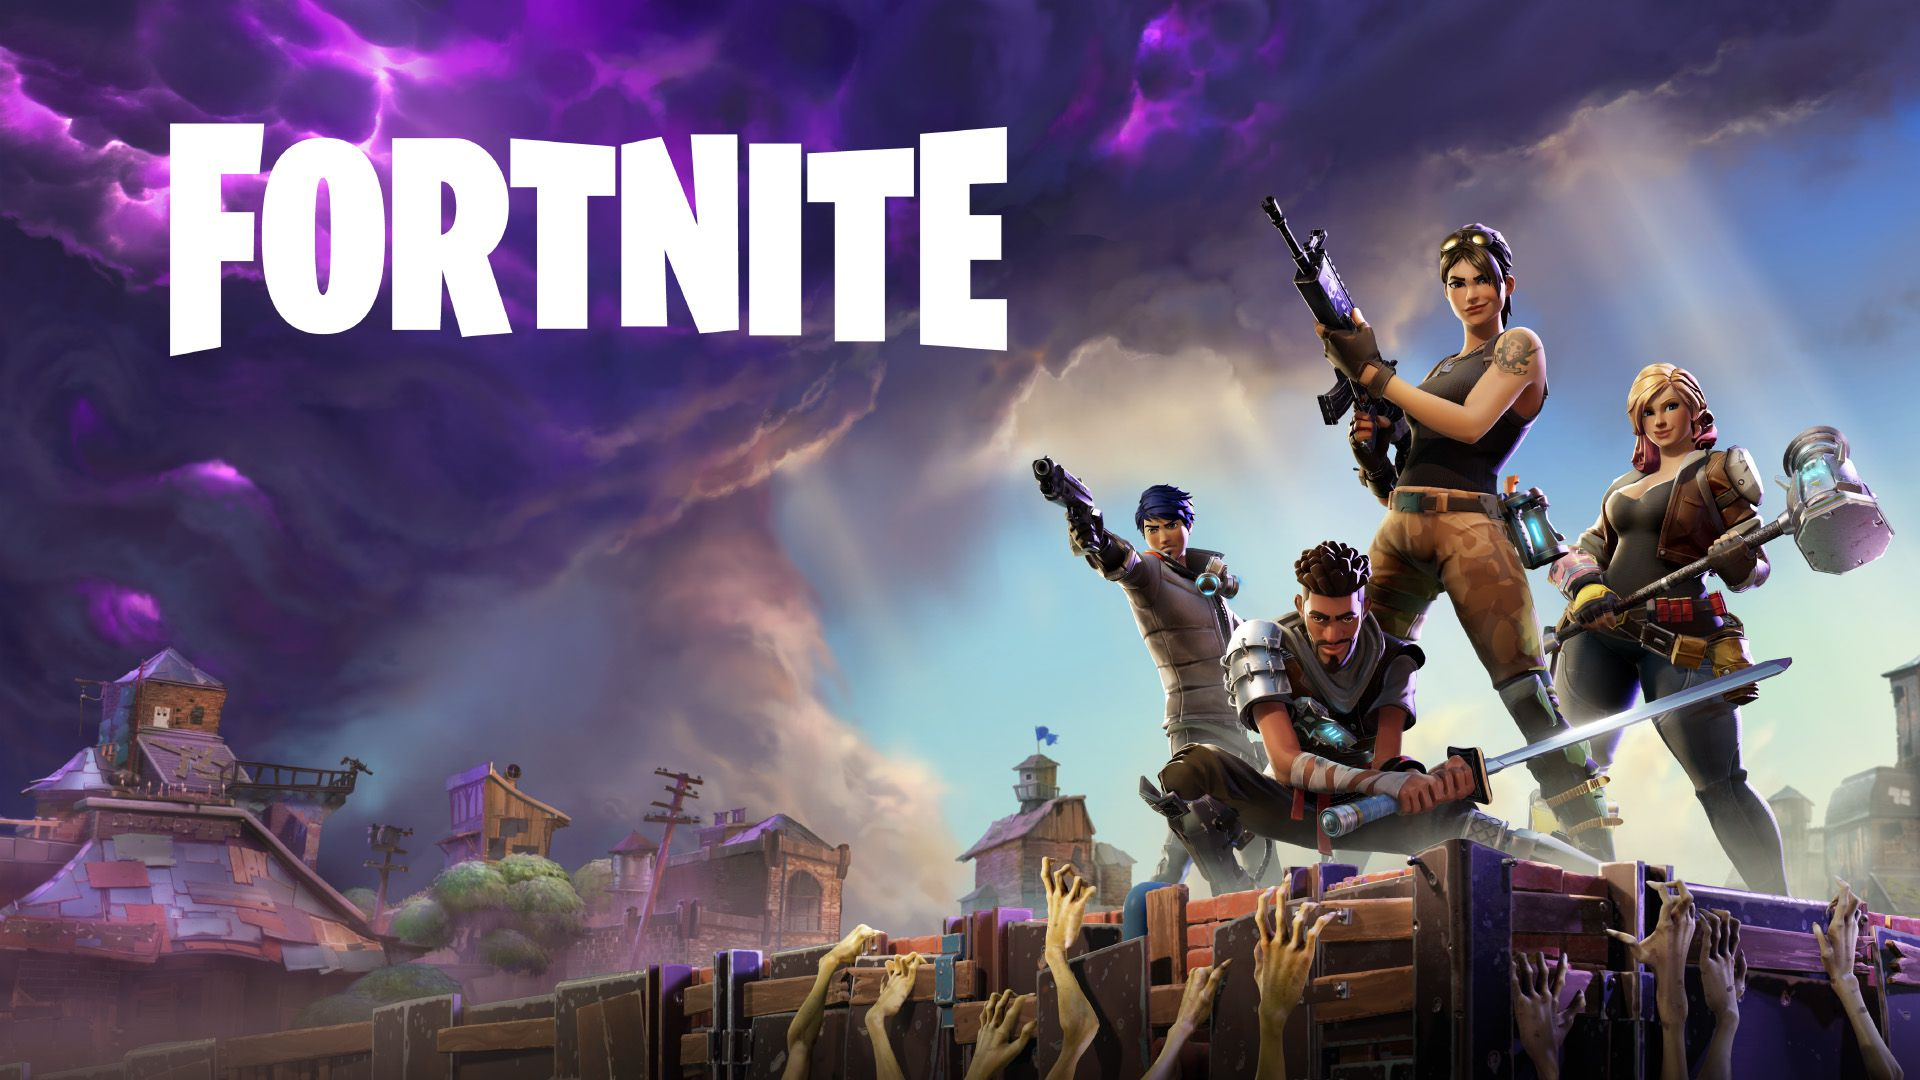 Fortnite Announces Early Access Release Hands On The Unfinished